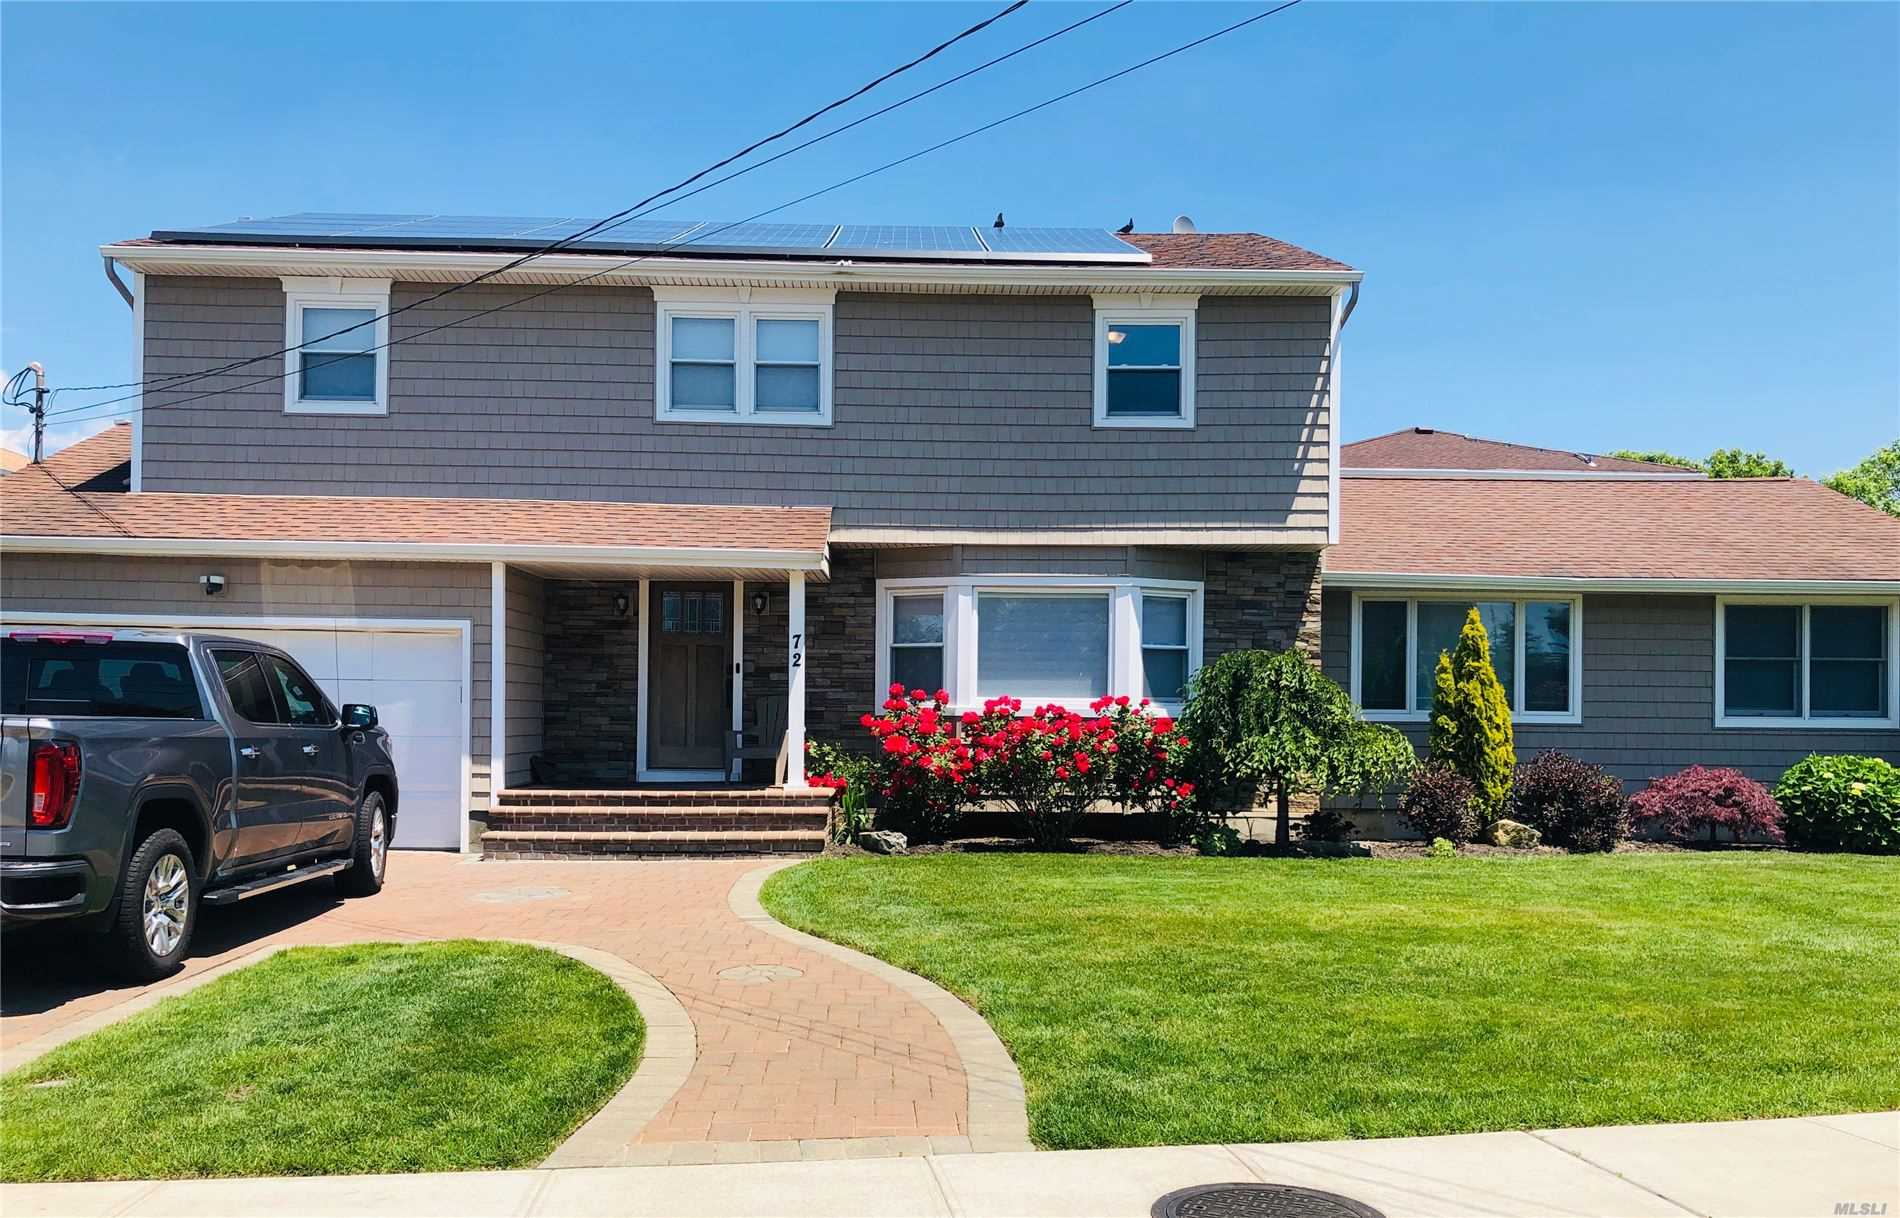 72 Tidewater Ave, Massapequa Park, New York